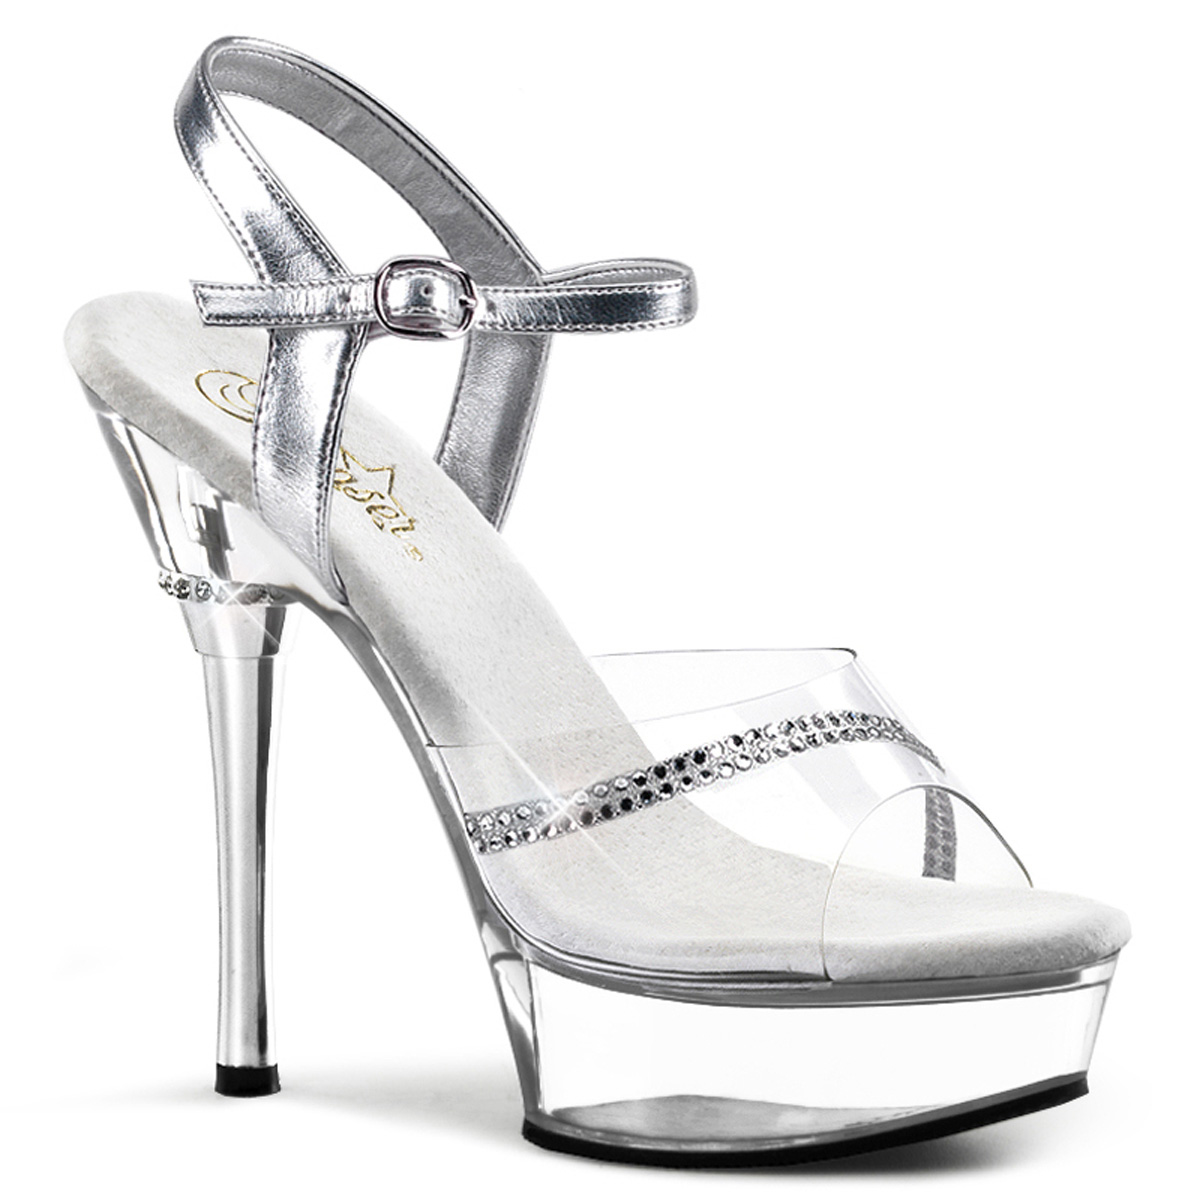 2f6ba7b706c2 ... Stiletto Heel Platform Ankle Strap Women Sandal 8 Clr clr. About this  product. Picture 1 of 2  Picture 2 of 2